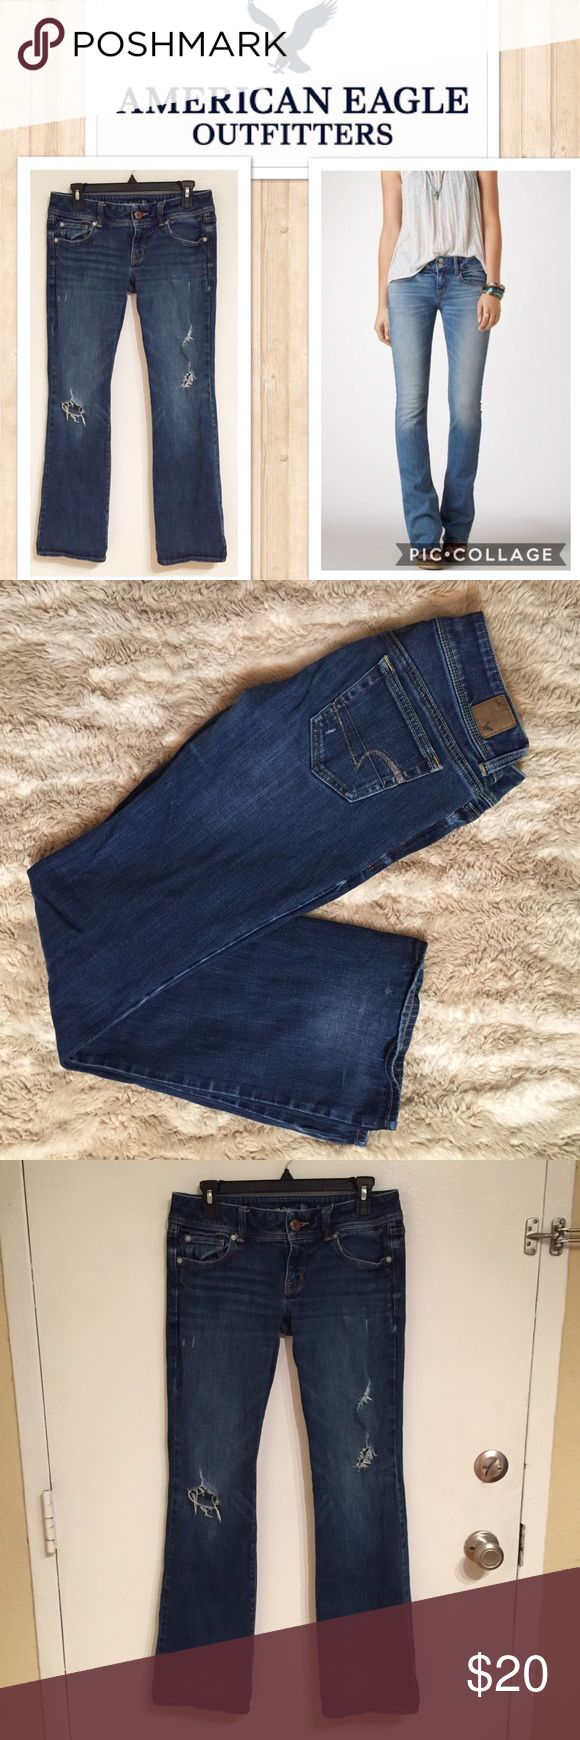 "American Eagle Slim Boot Distressed Jeans American Eagle ""Slim Boot"" distressed jeans. They do show some wear on the back by the heels. Size 8. Measures 16"" flat at the waist, and 31"" inseam. #americaneagleoutffiters #americaneagle #slim #boot #slimboot #jeans #denim #basic #staple #punkydoodle  No modeling Smoke free home I do discount bundles American Eagle Outfitters Jeans Boot Cut"